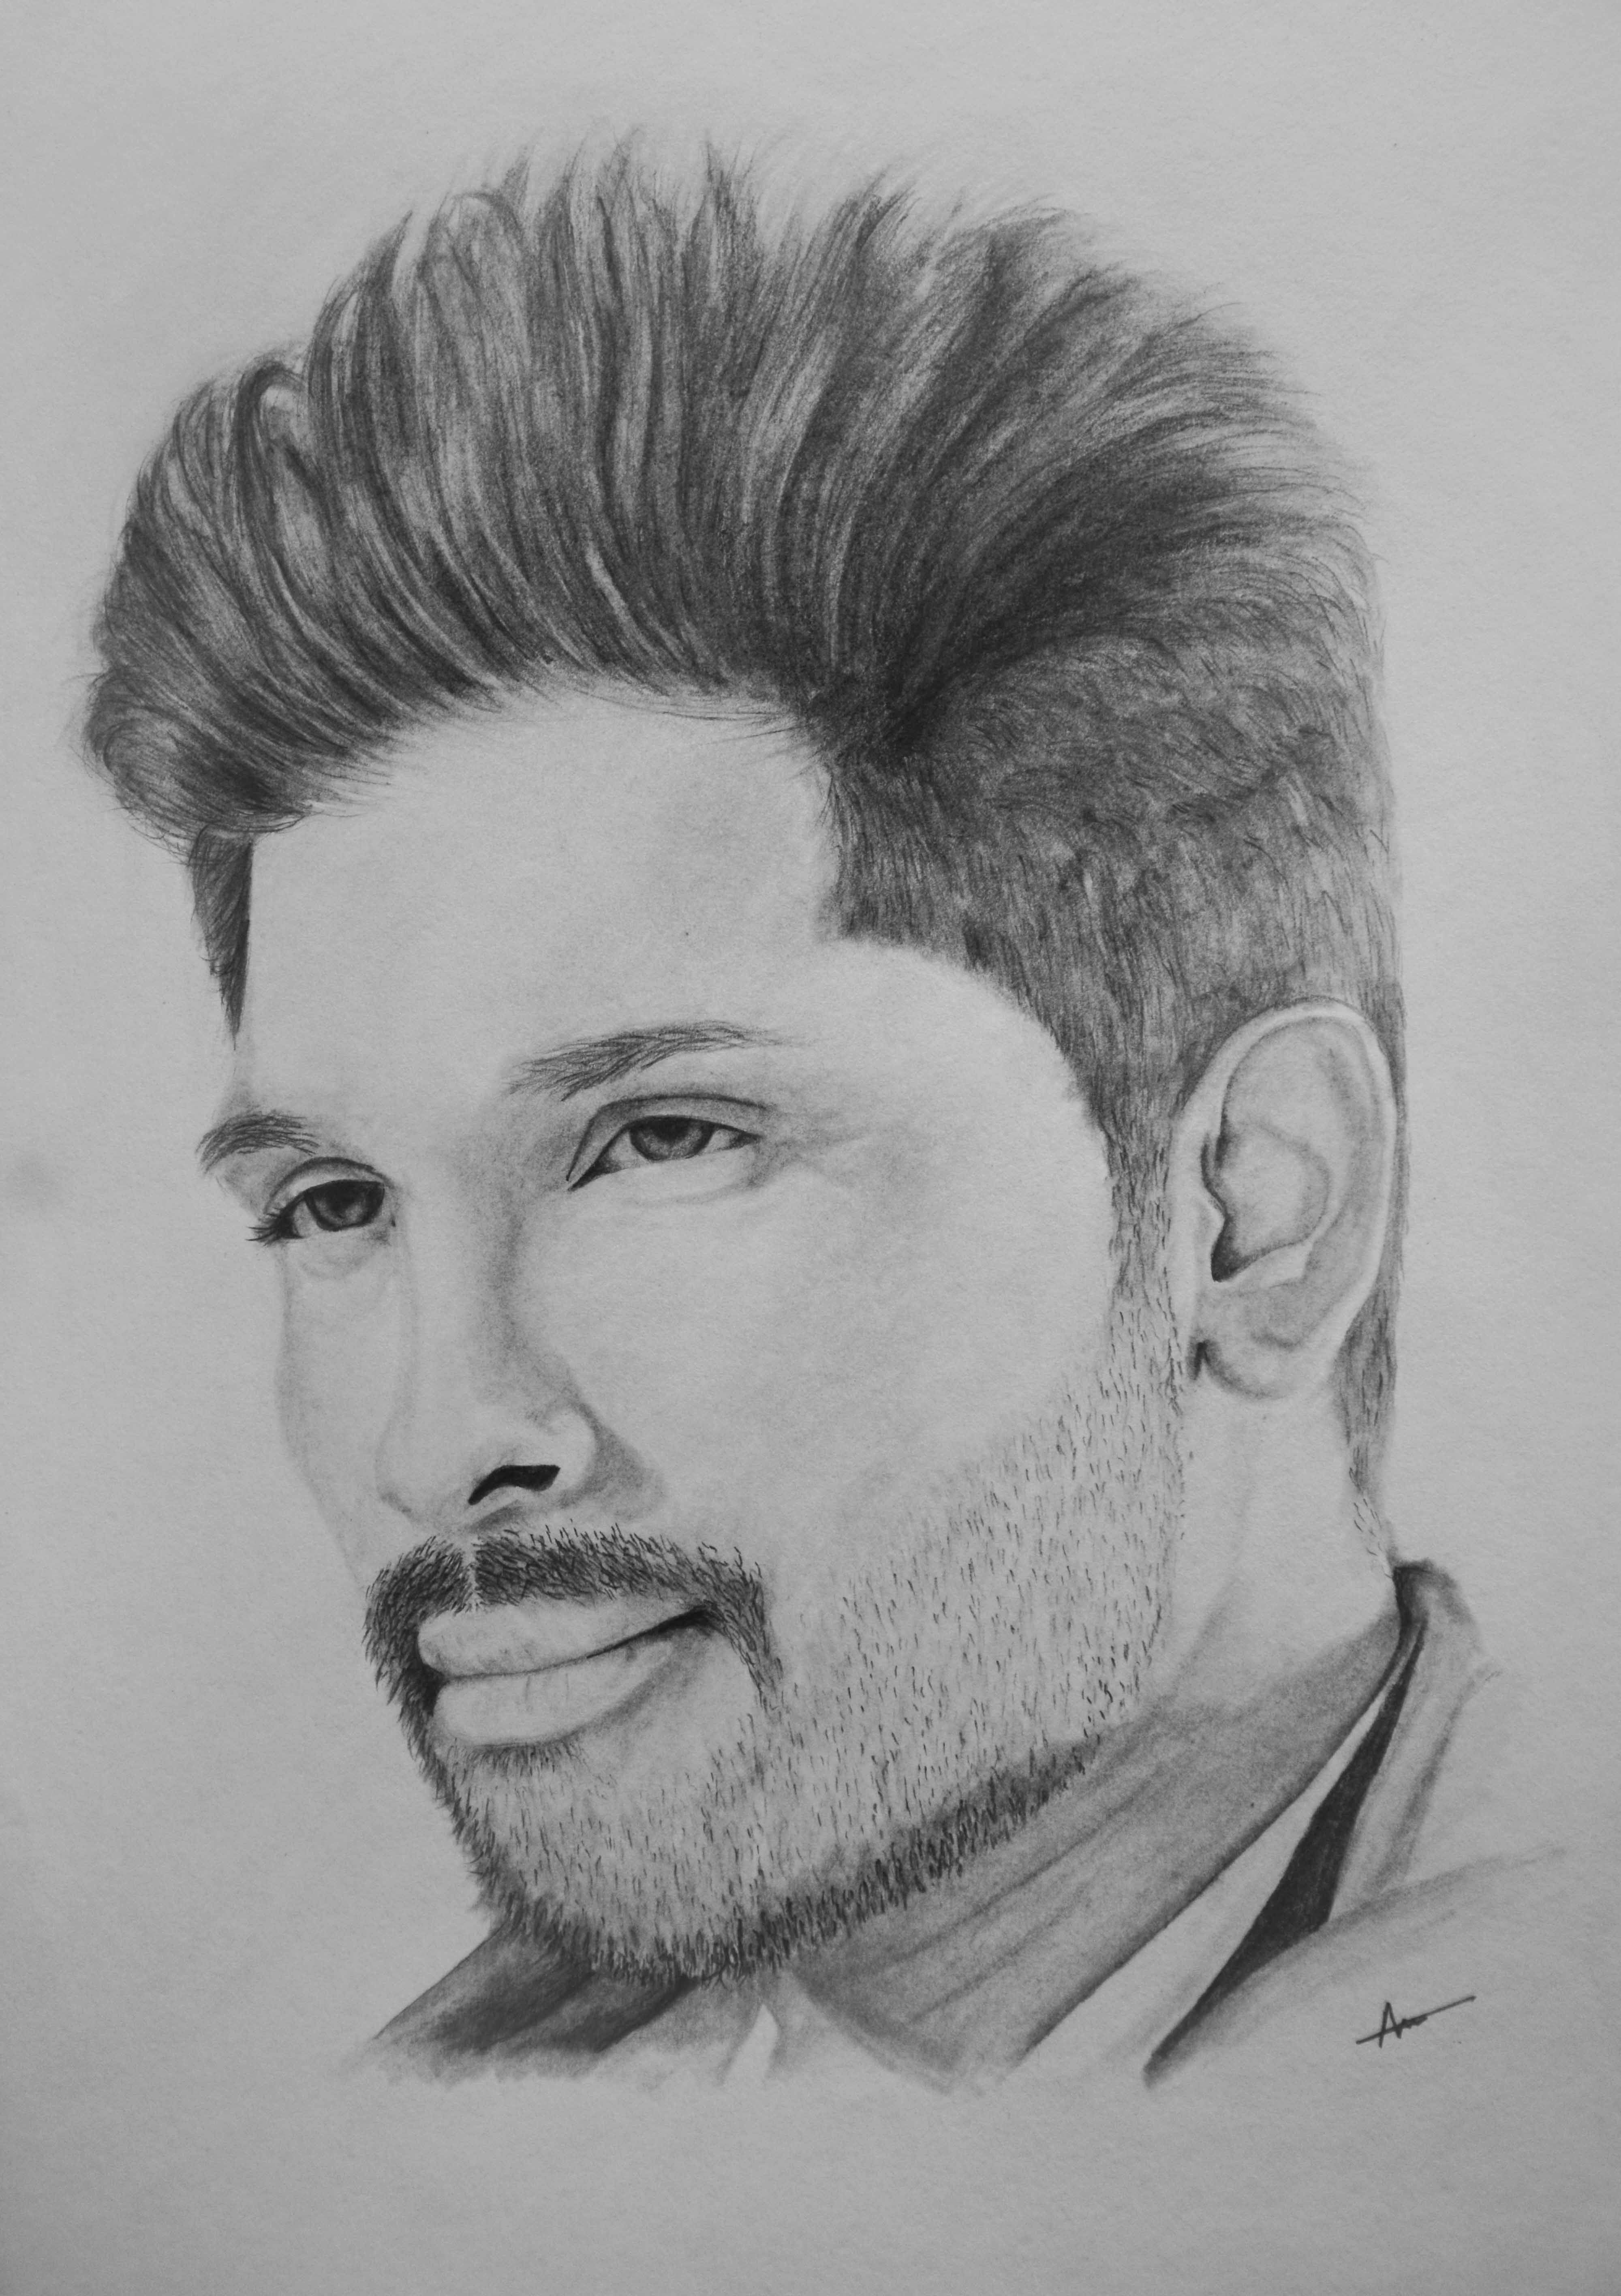 Allu Arjun Pencil Sketch Click The Link For The Full Video Pencil Sketch Pencil Drawings Of Girls Art Drawings Sketches Pencil